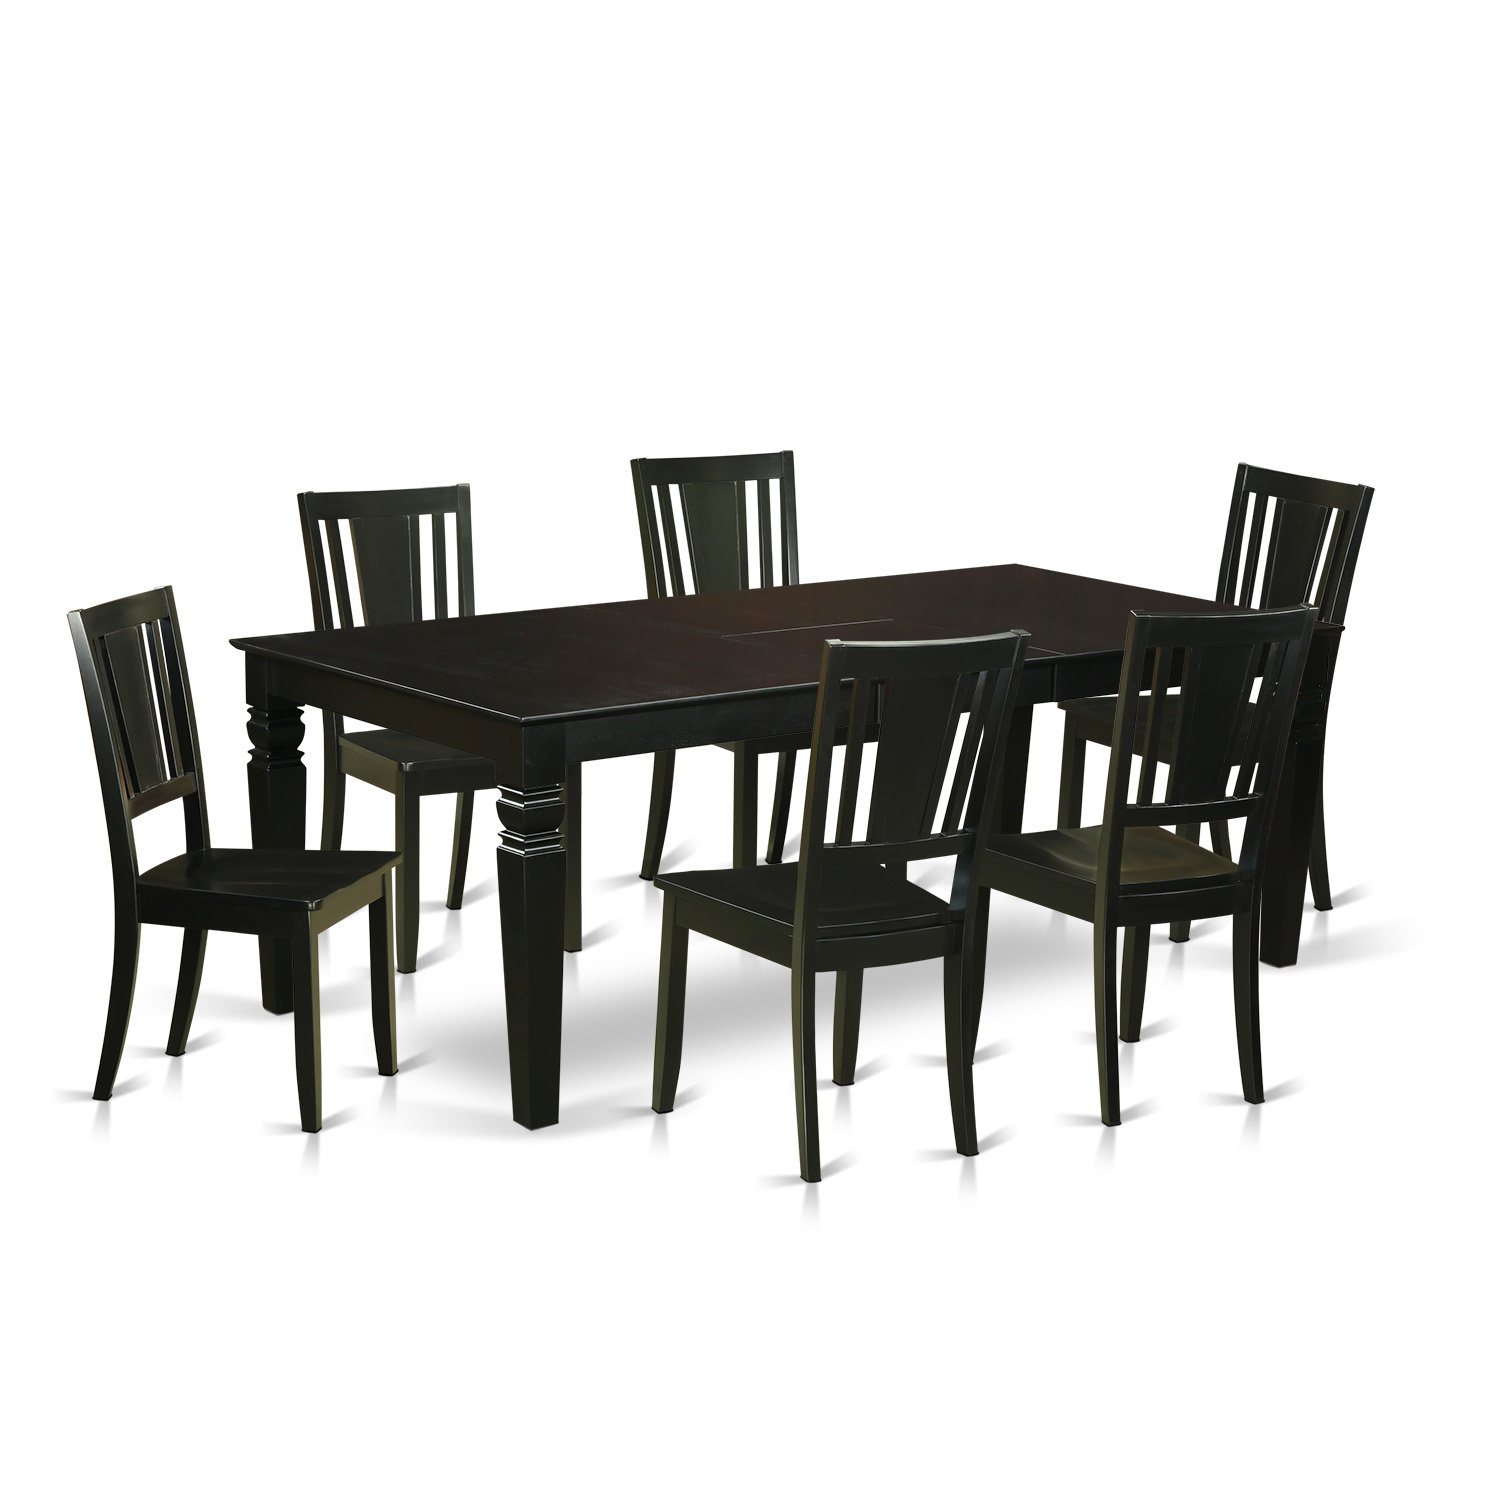 Darby Home Co Arana 7 Piece Dining Set With Current Bate Red Retro 3 Piece Dining Sets (View 12 of 20)